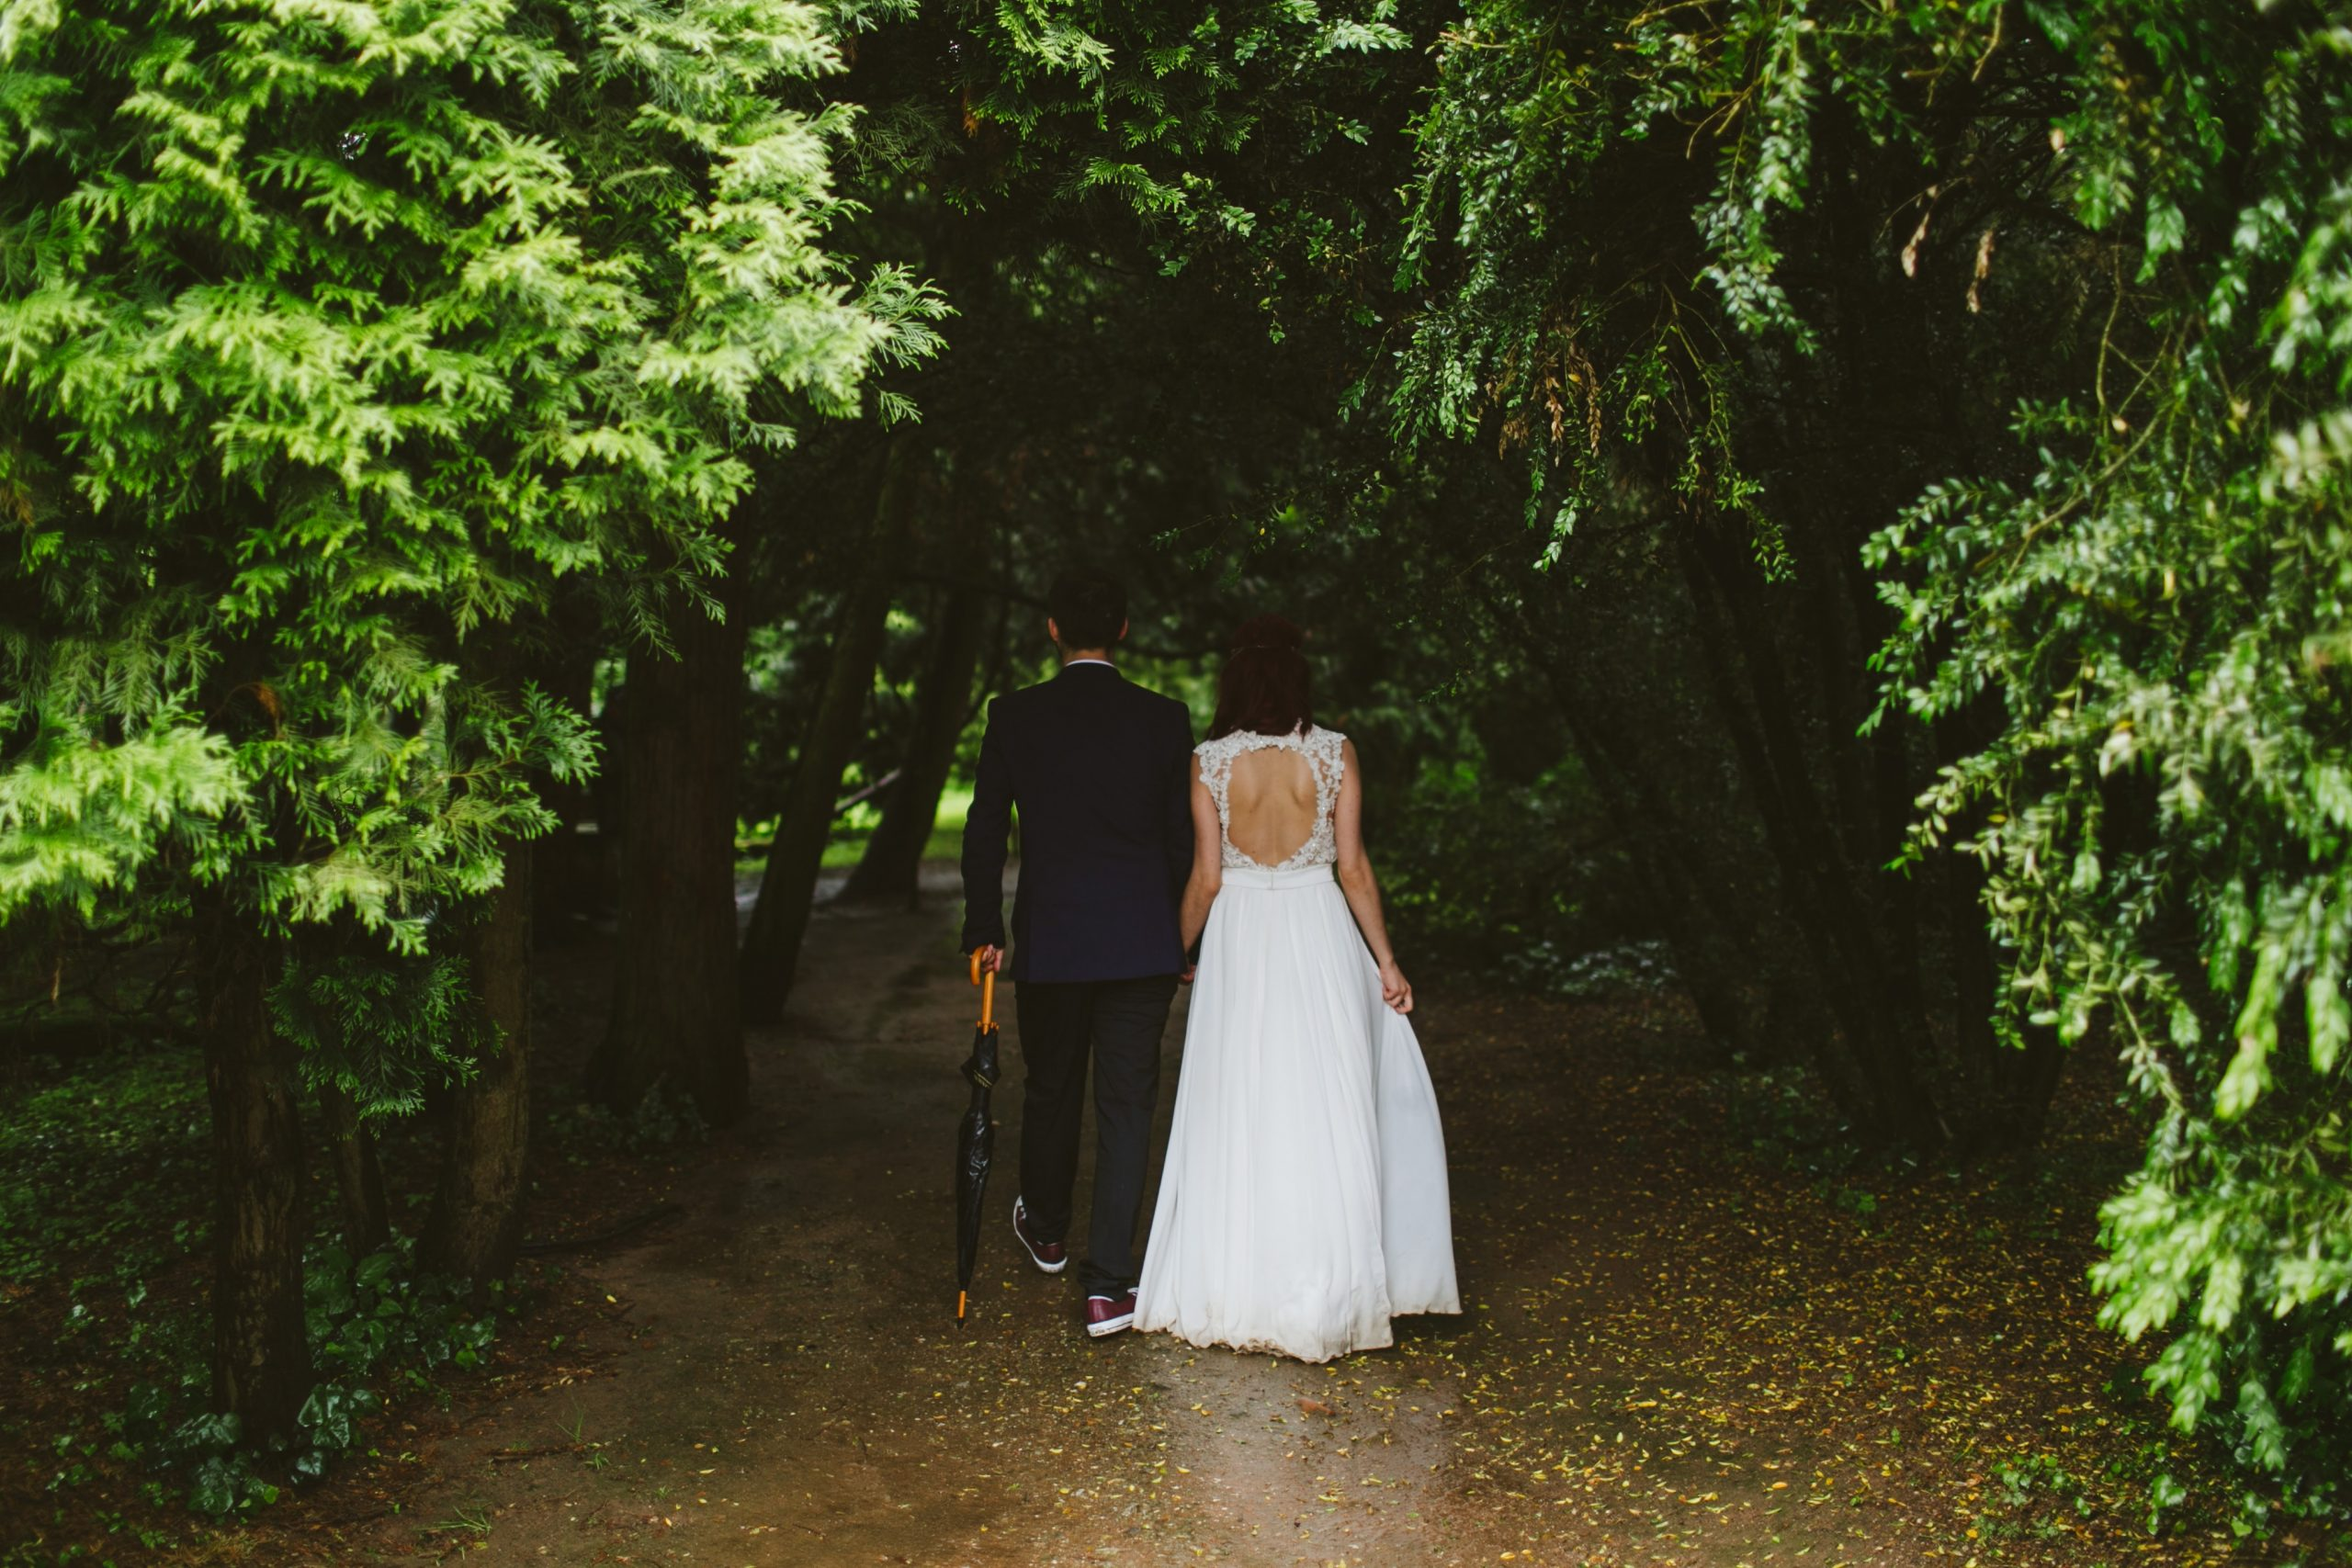 A bride and groom holding hands in a forest